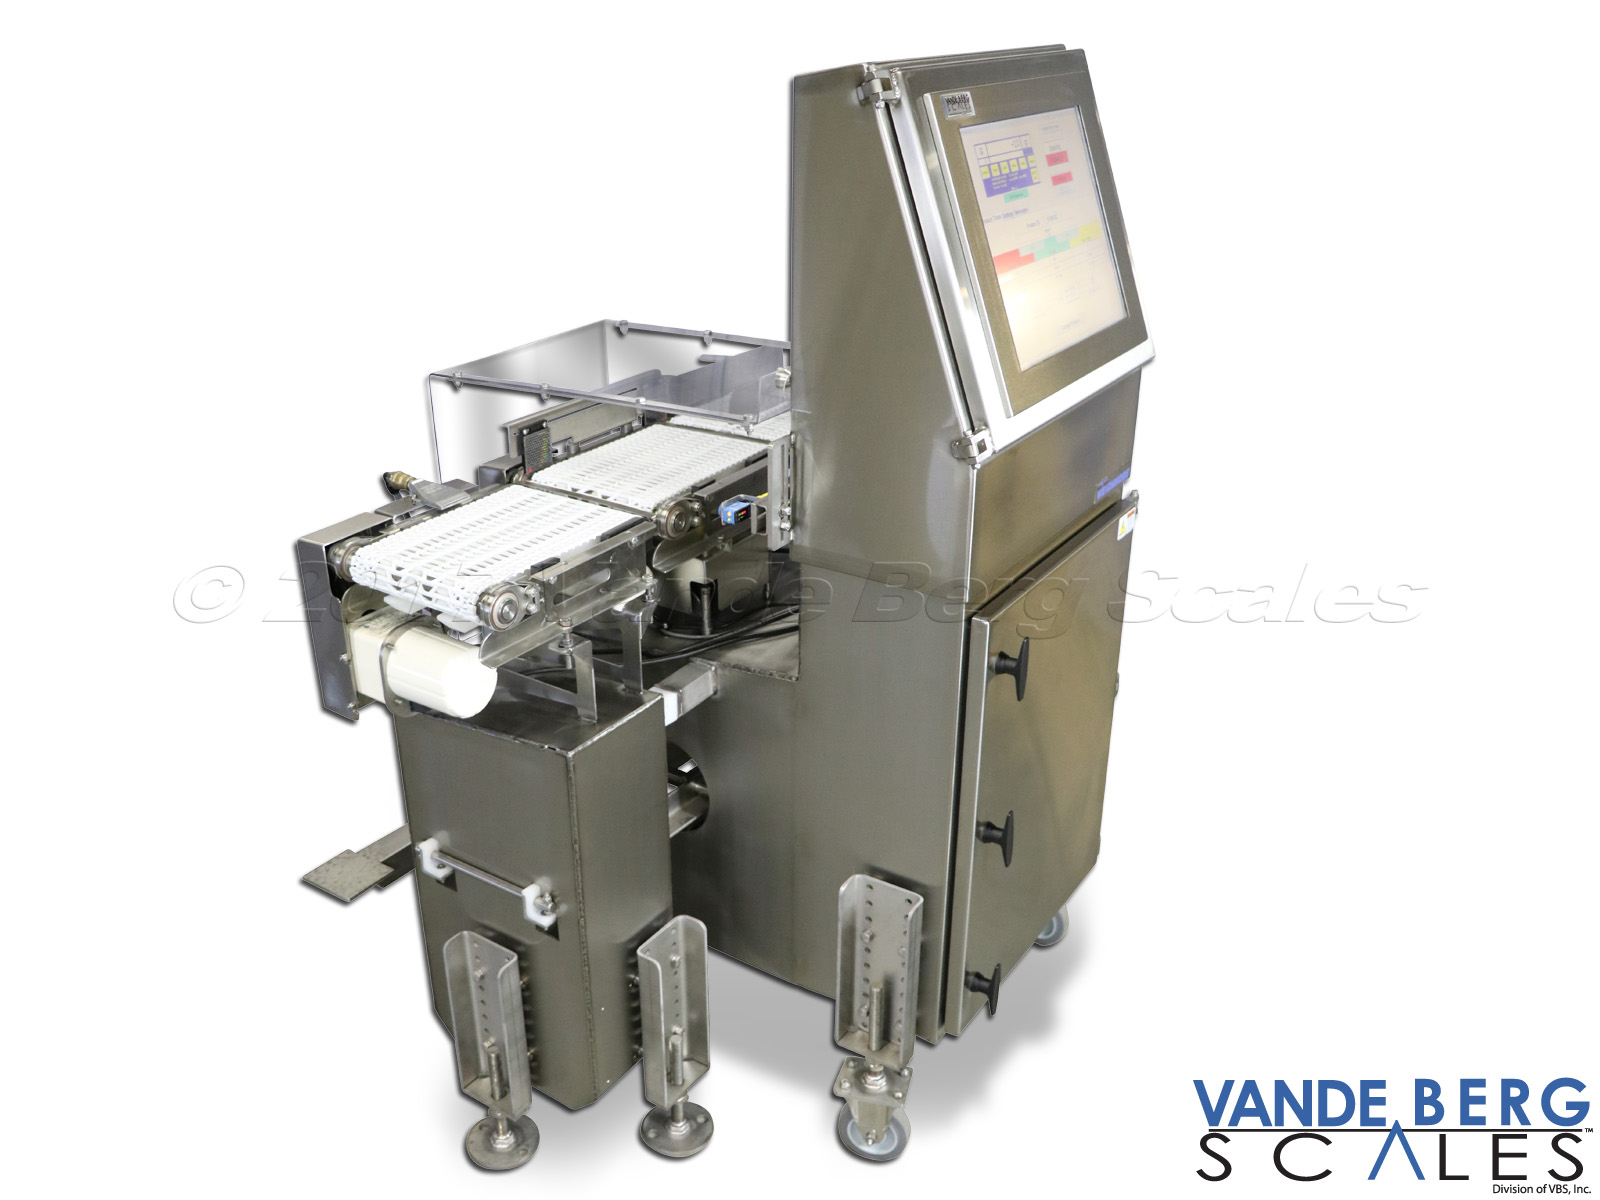 Heavy-duty industrial checkweigher with castors for mobility.